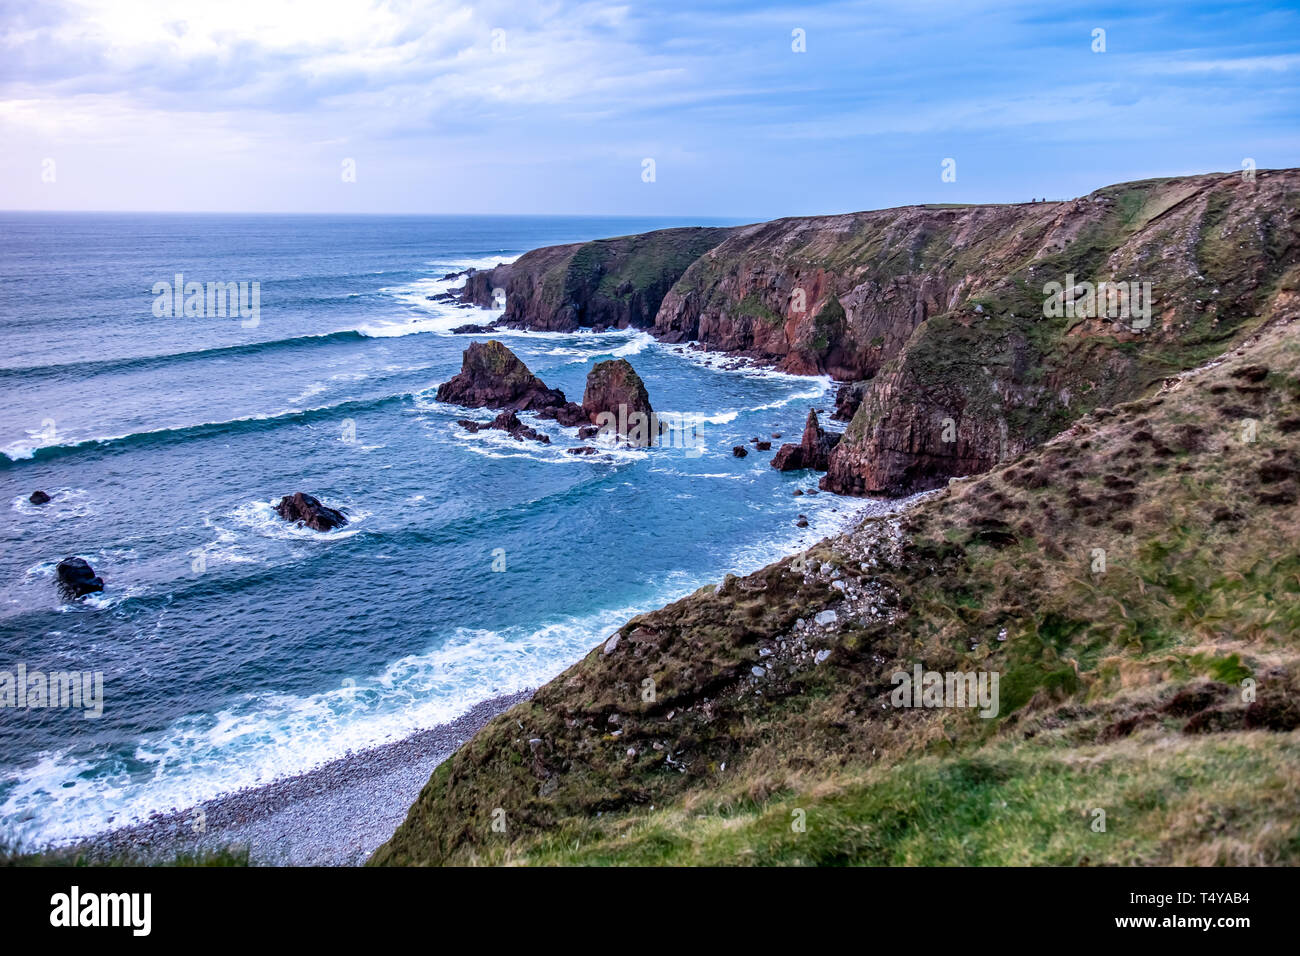 Bloody Foreland coastline in the Gaeltacht area of Donegal. Wild Atlantic Way - Ireland. - Stock Image